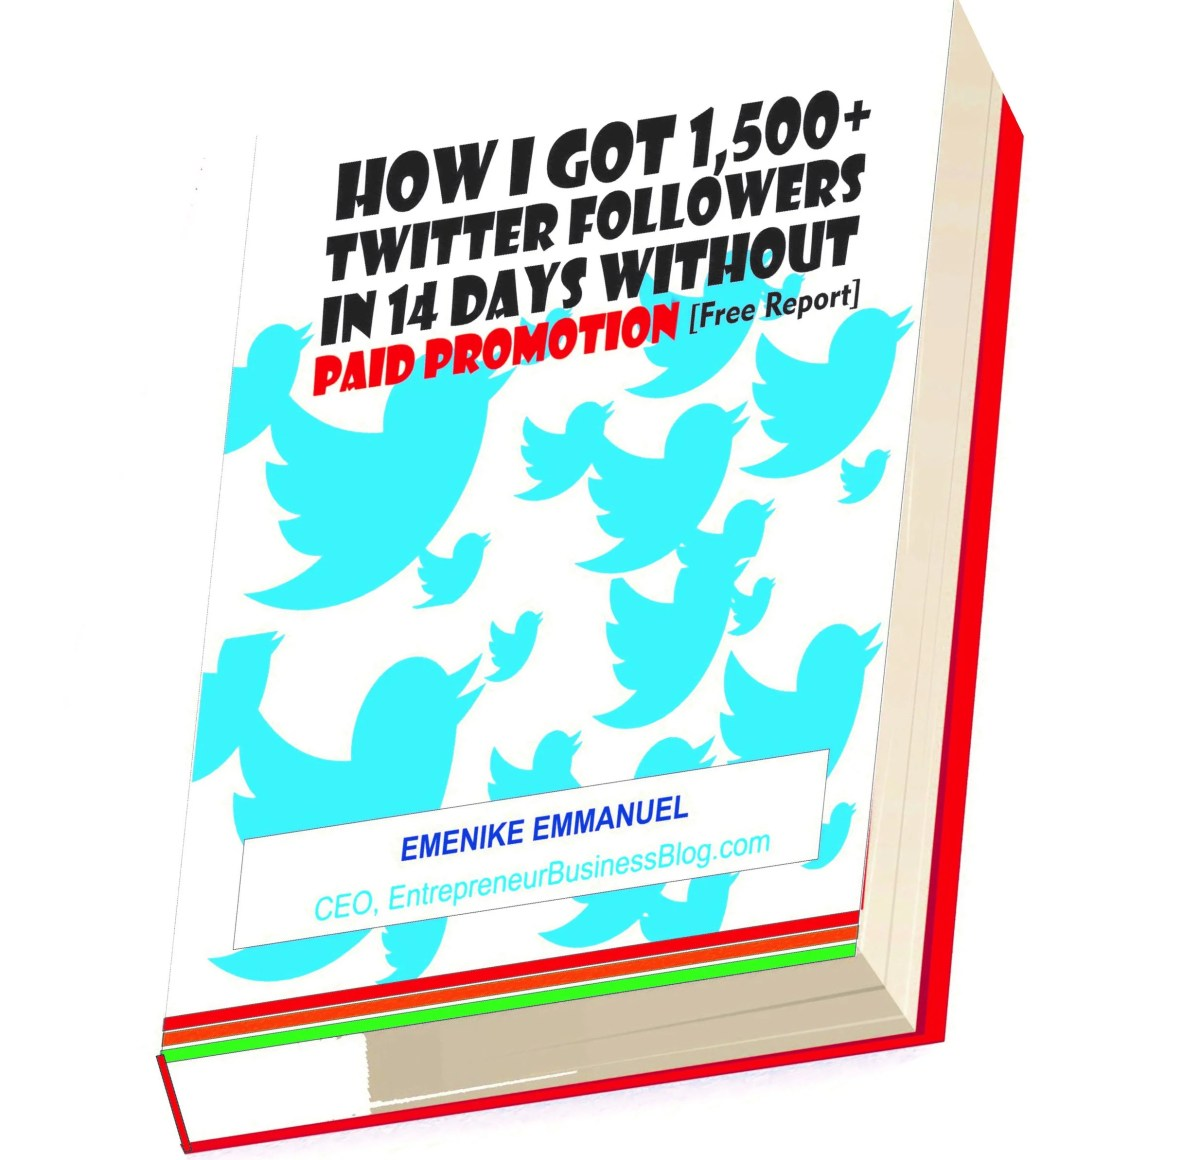 Free eBook: How I Got 1500+ Twitter Followers in 14 Days without Paid Promotion